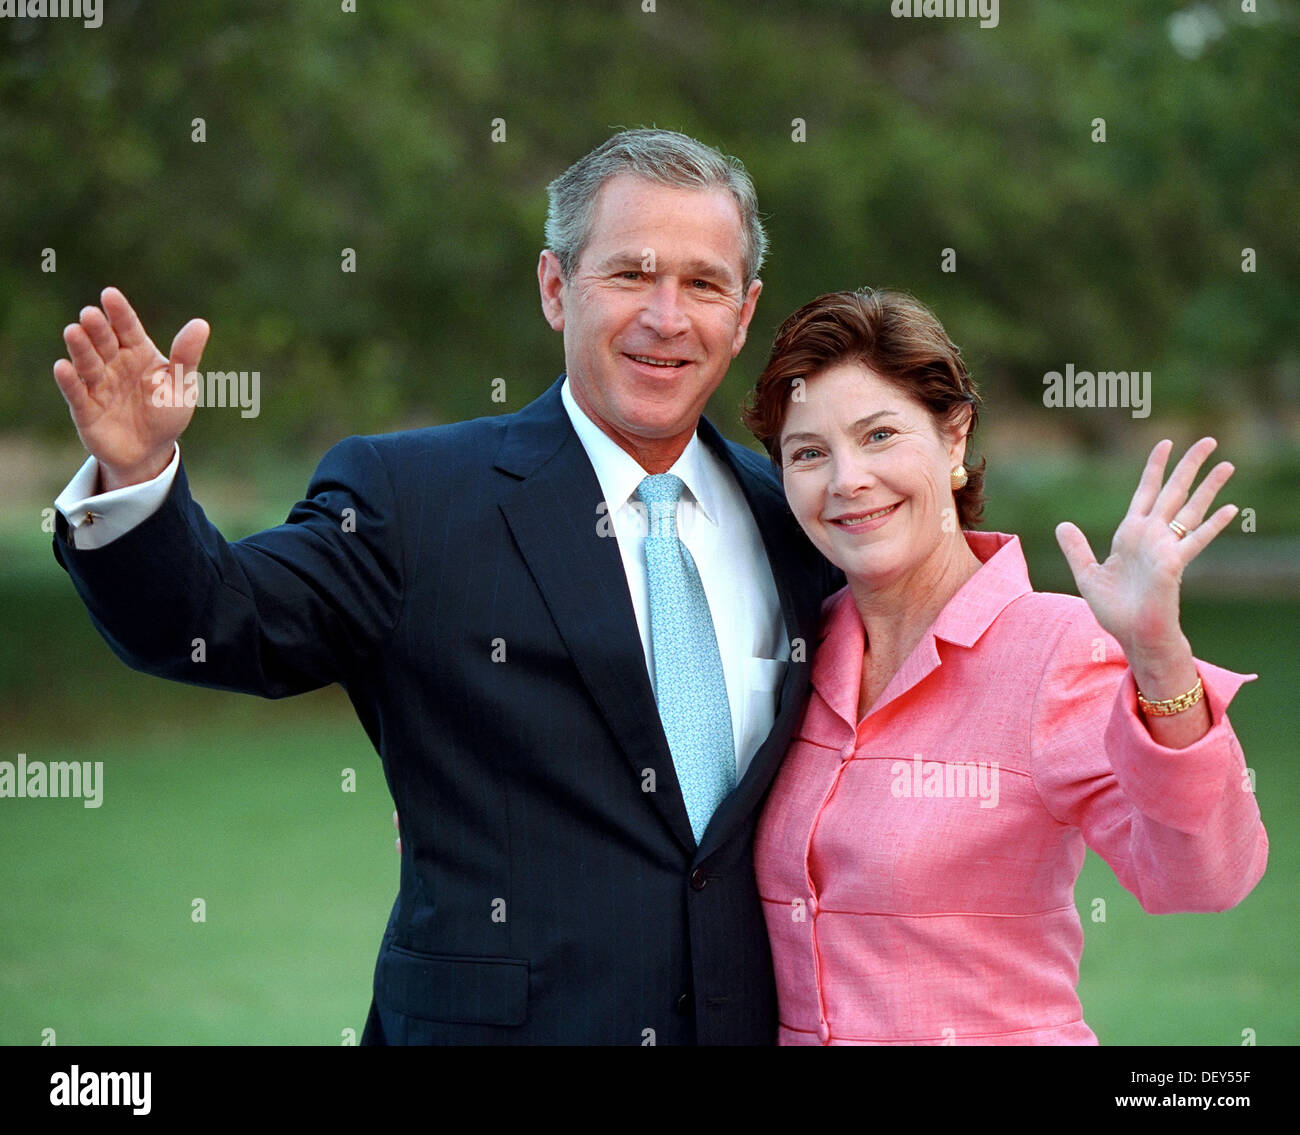 Think, that George w and laura bush